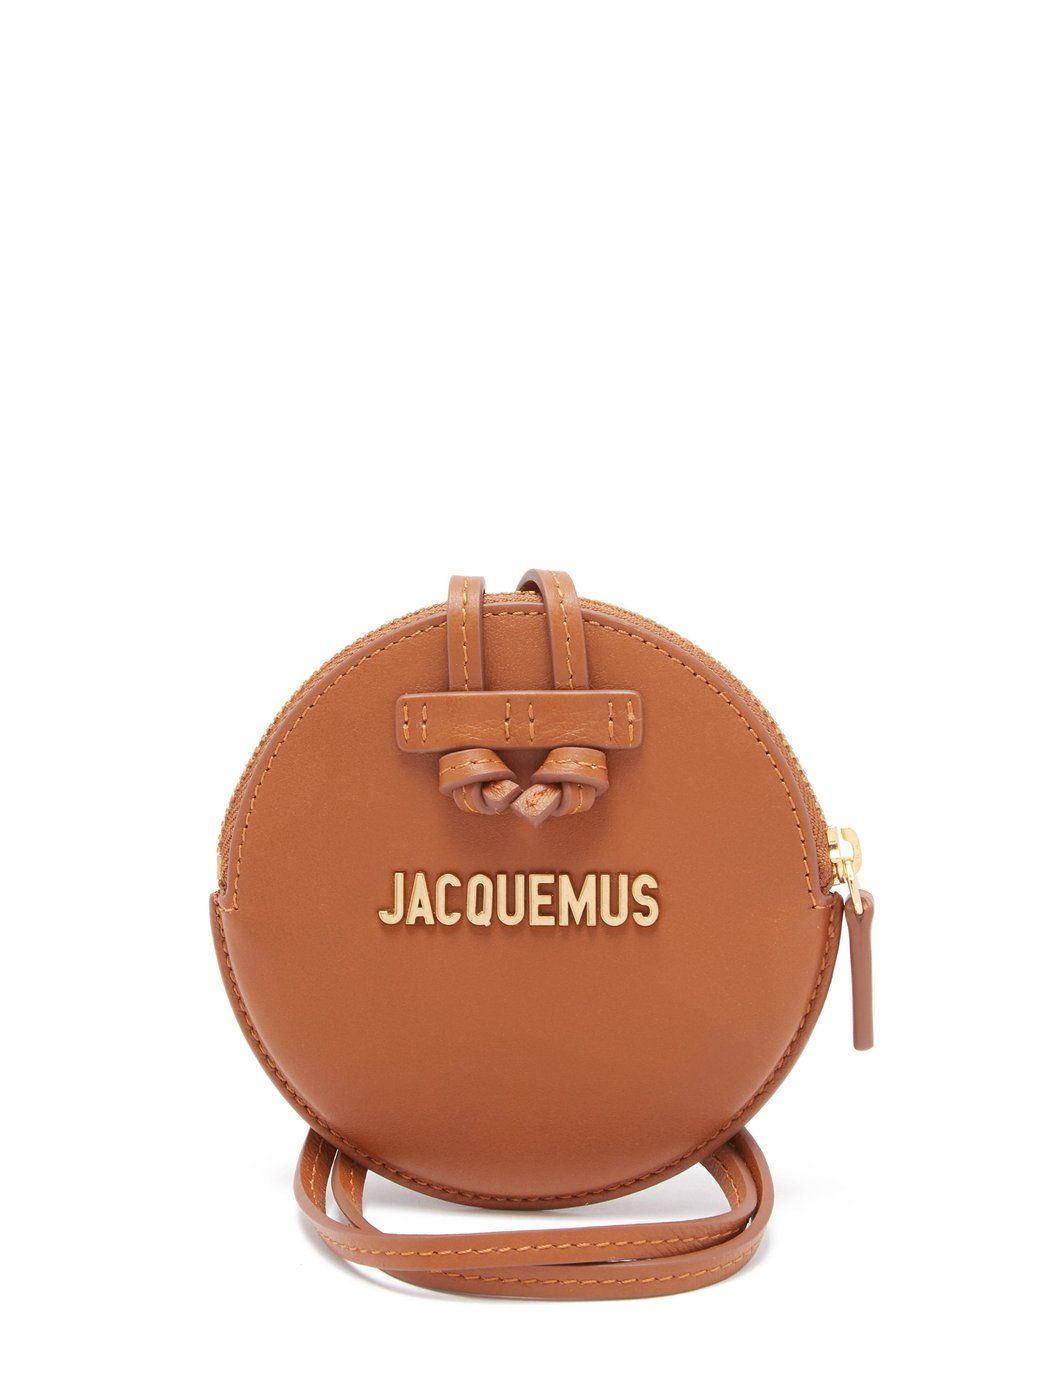 jacquemus-le-pitchou-coin-purse-necklace-brown